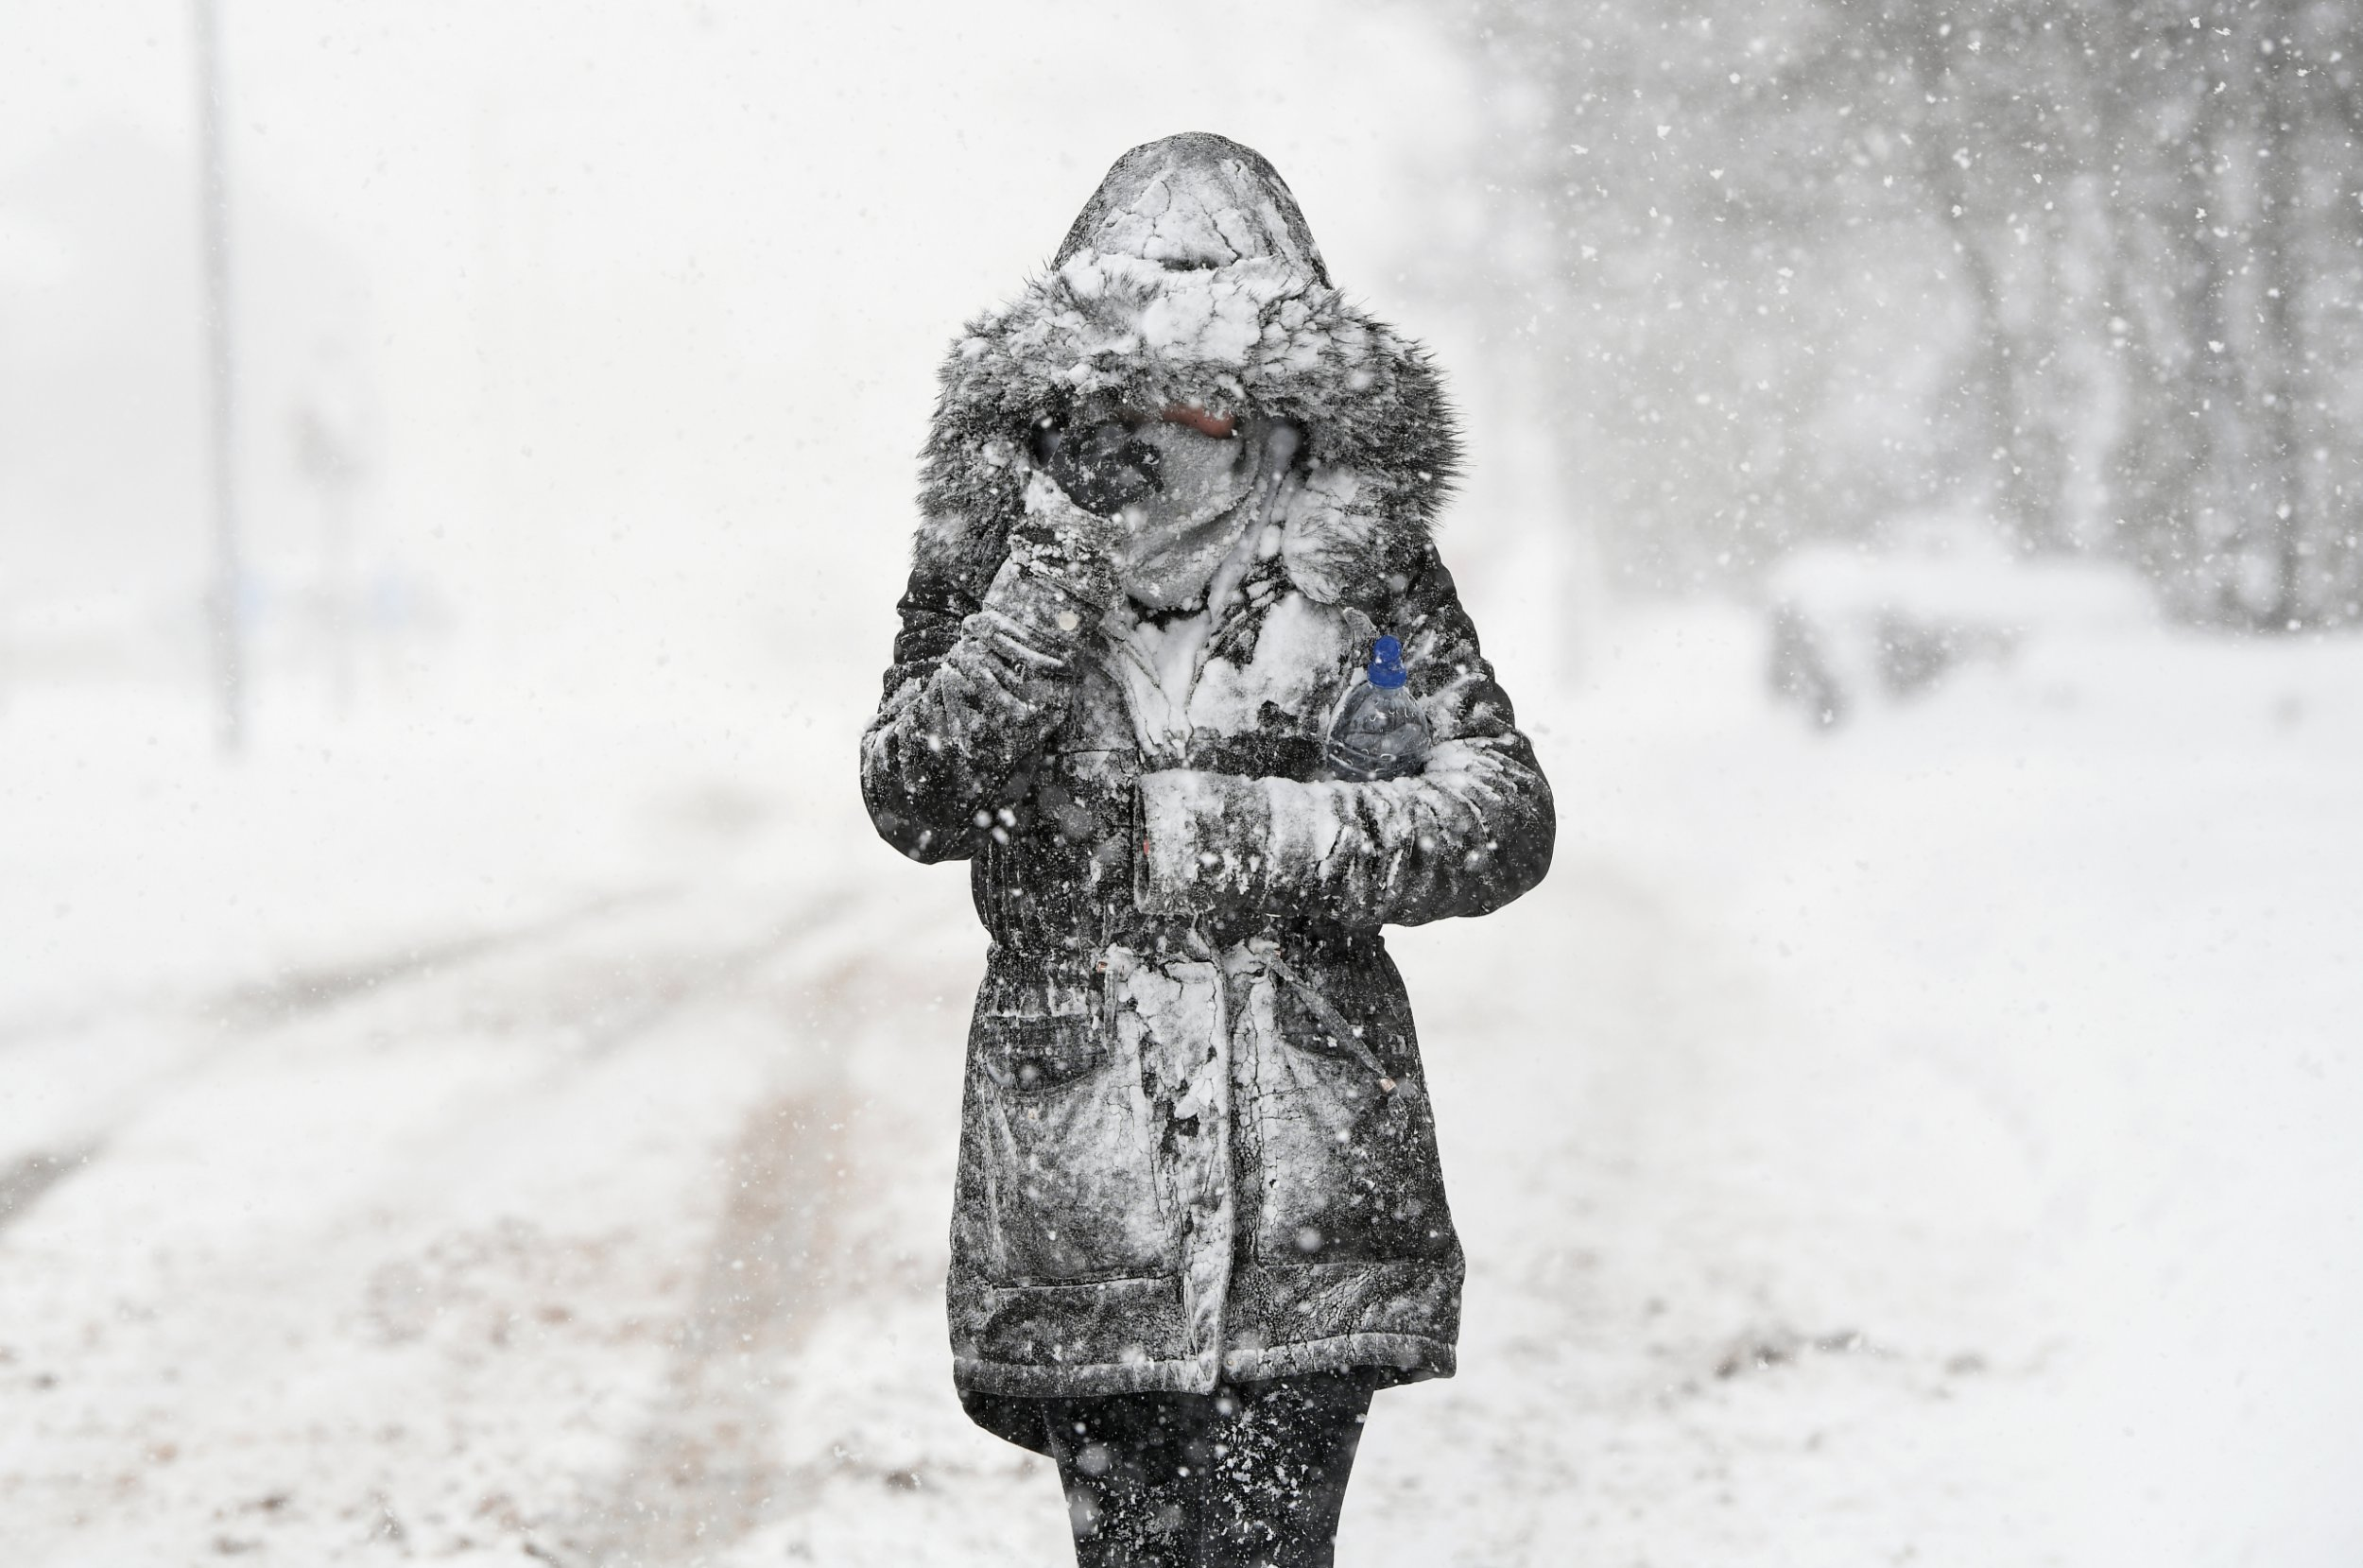 """BALLOCH, UNITED KINGDOM - MARCH 01: A woman makes her way through the snow on March 1, 2018 in Balloch, Scotland. Freezing weather conditions dubbed the """"Beast from the East"""" combines with Storm Emma coming in from the South West of Britain to bring further snow and sub-zero temperatures causing chaos on roads and shutting schools. Red weather warnings for snow have been seen in the UK for the first time and five people have died as a result. (Photo by Jeff J Mitchell/Getty Images)"""